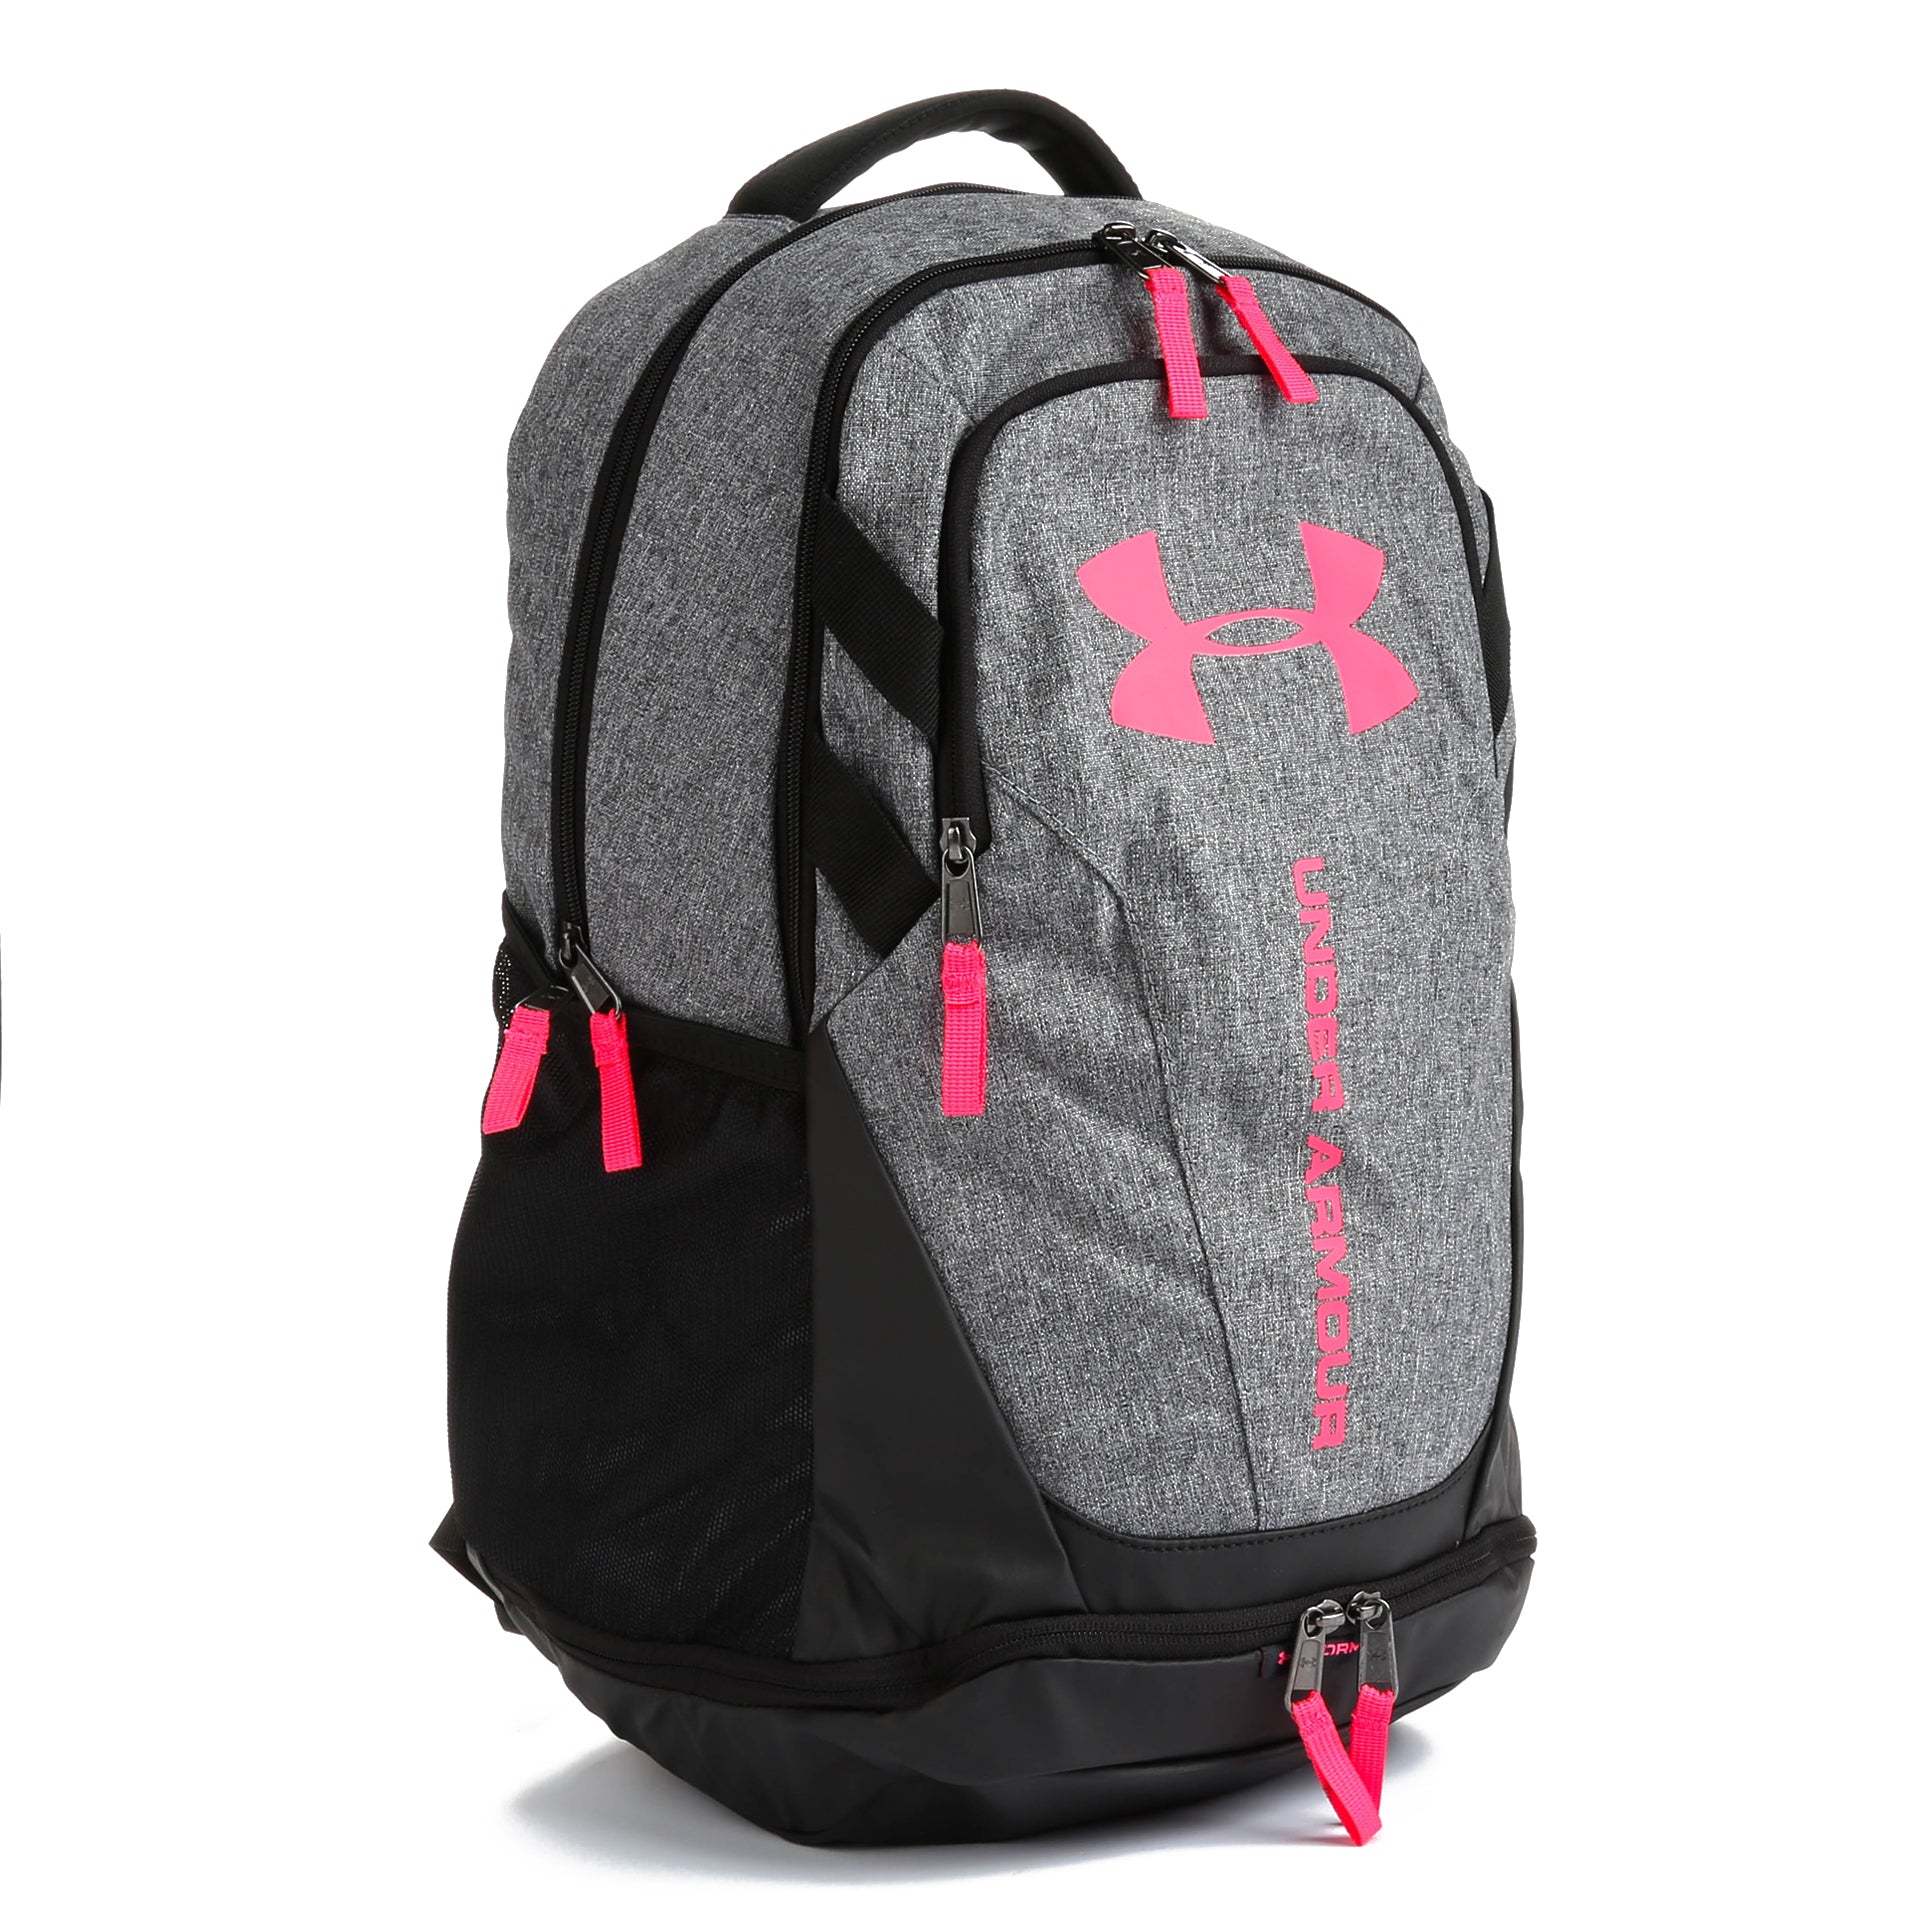 Under Armour Hustle 3.0 Backpack - Heather Grey   Pink - New Star 771b0897f9e9b